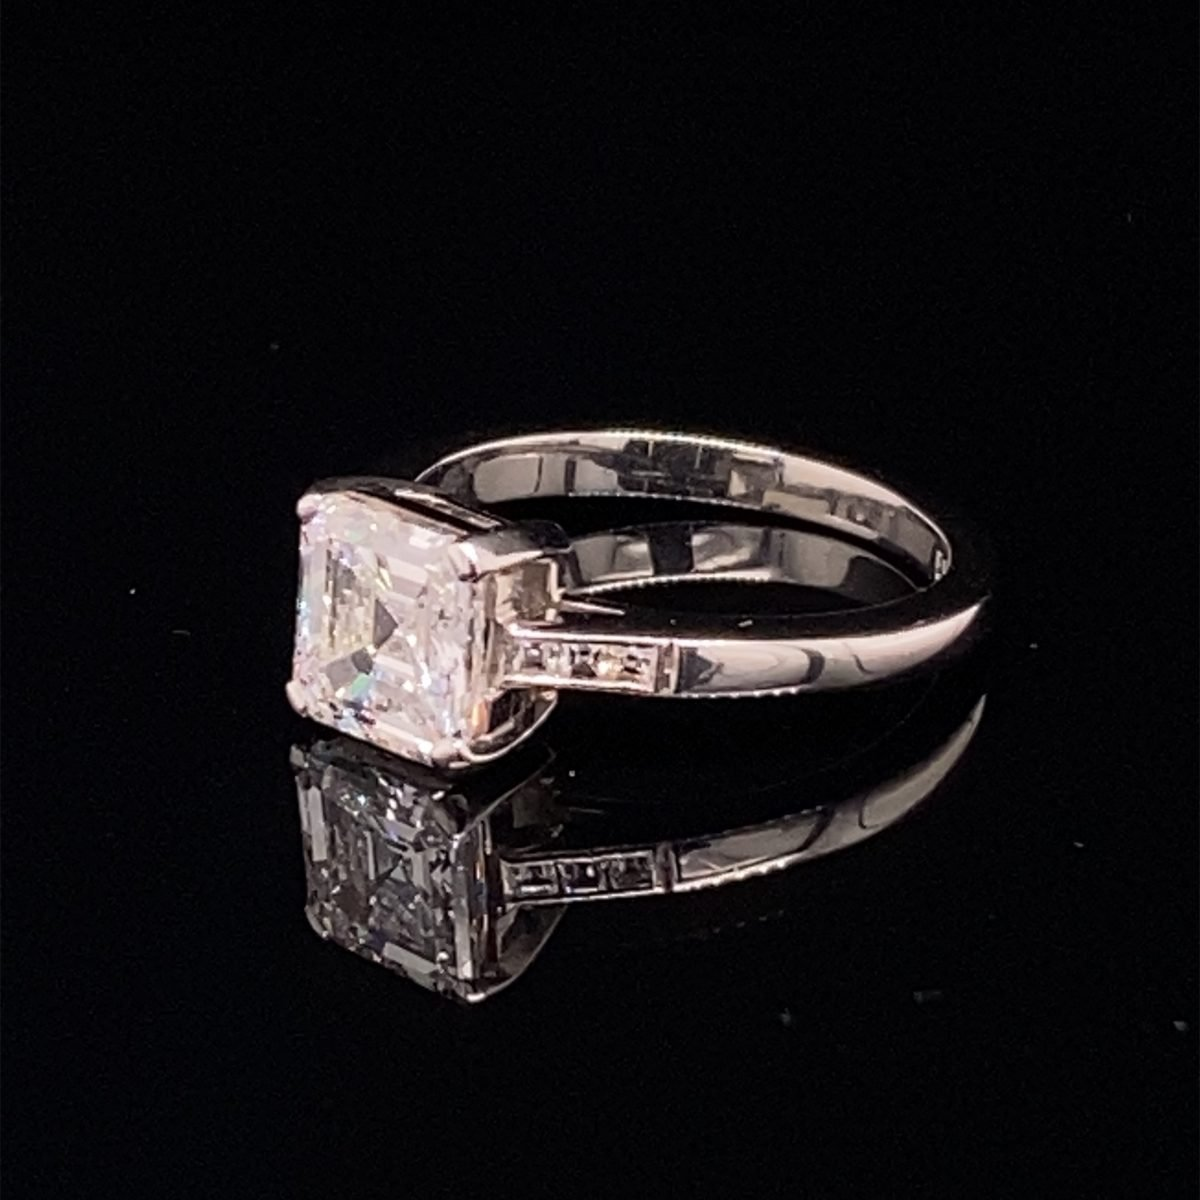 Square emerald cut single stone diamond ring